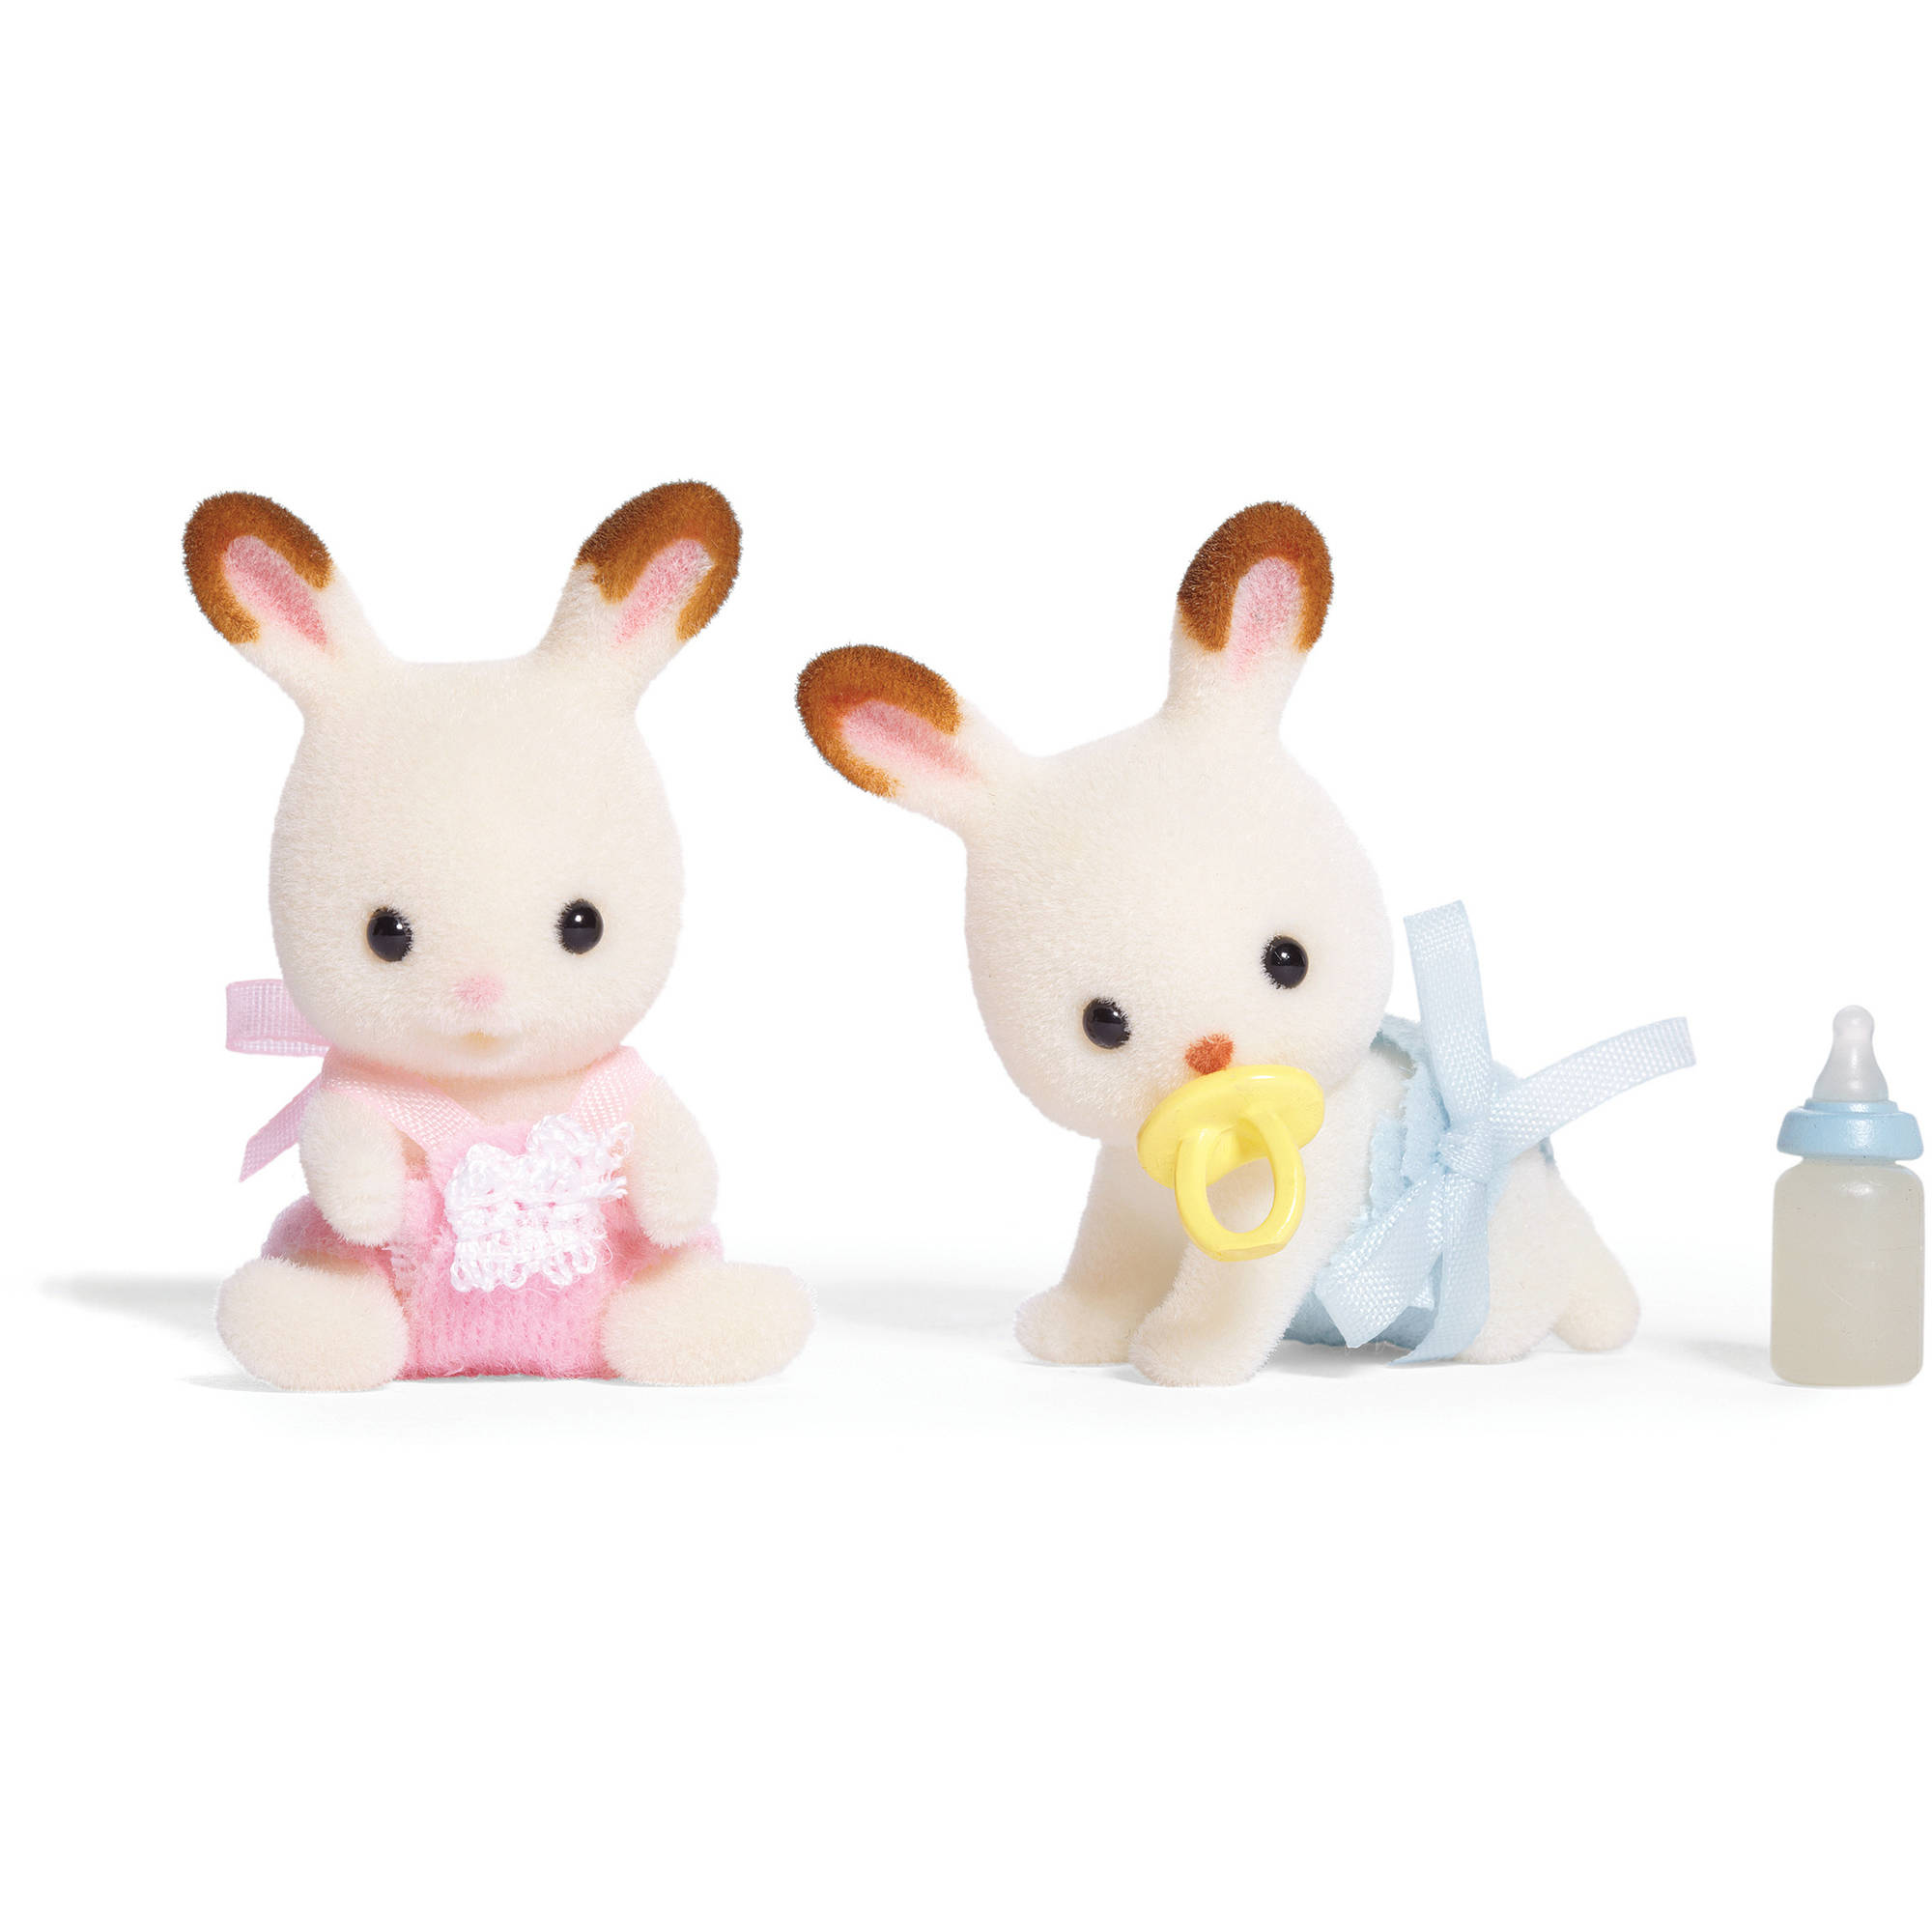 Calico Critters Hopscotch Rabbit Twins Walmart Com